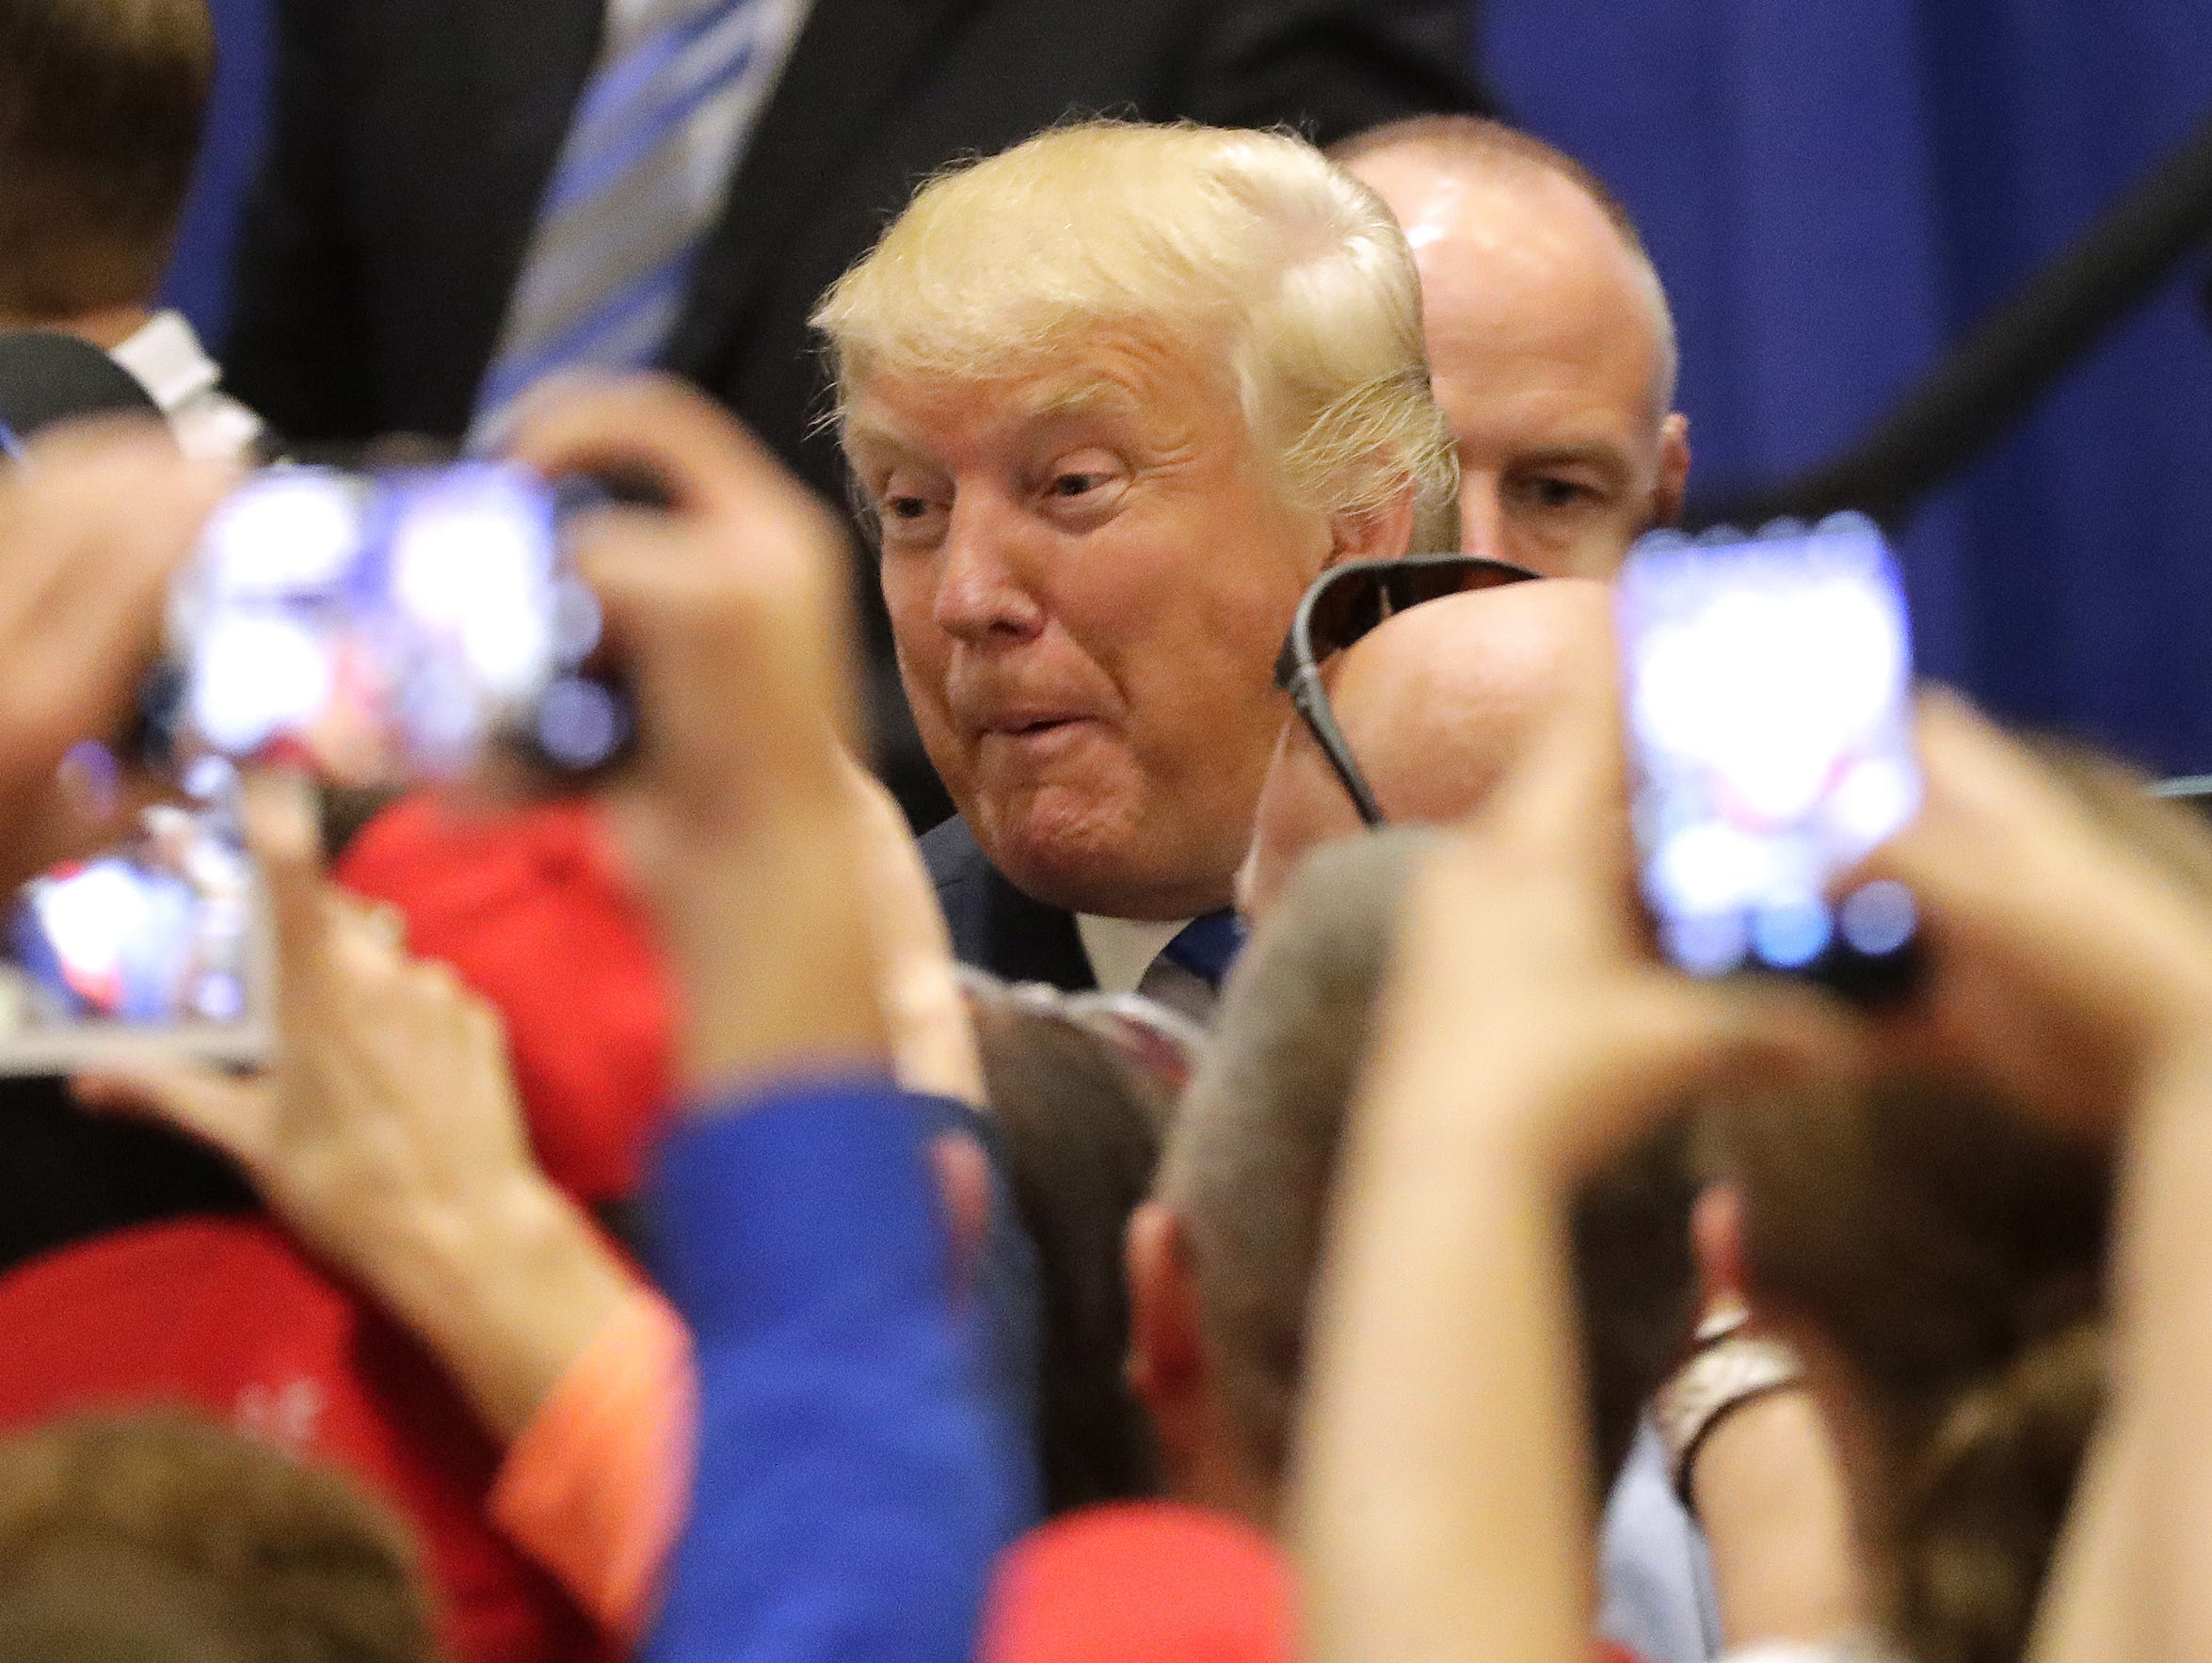 Presidential candidate Donald Trump greets fans after